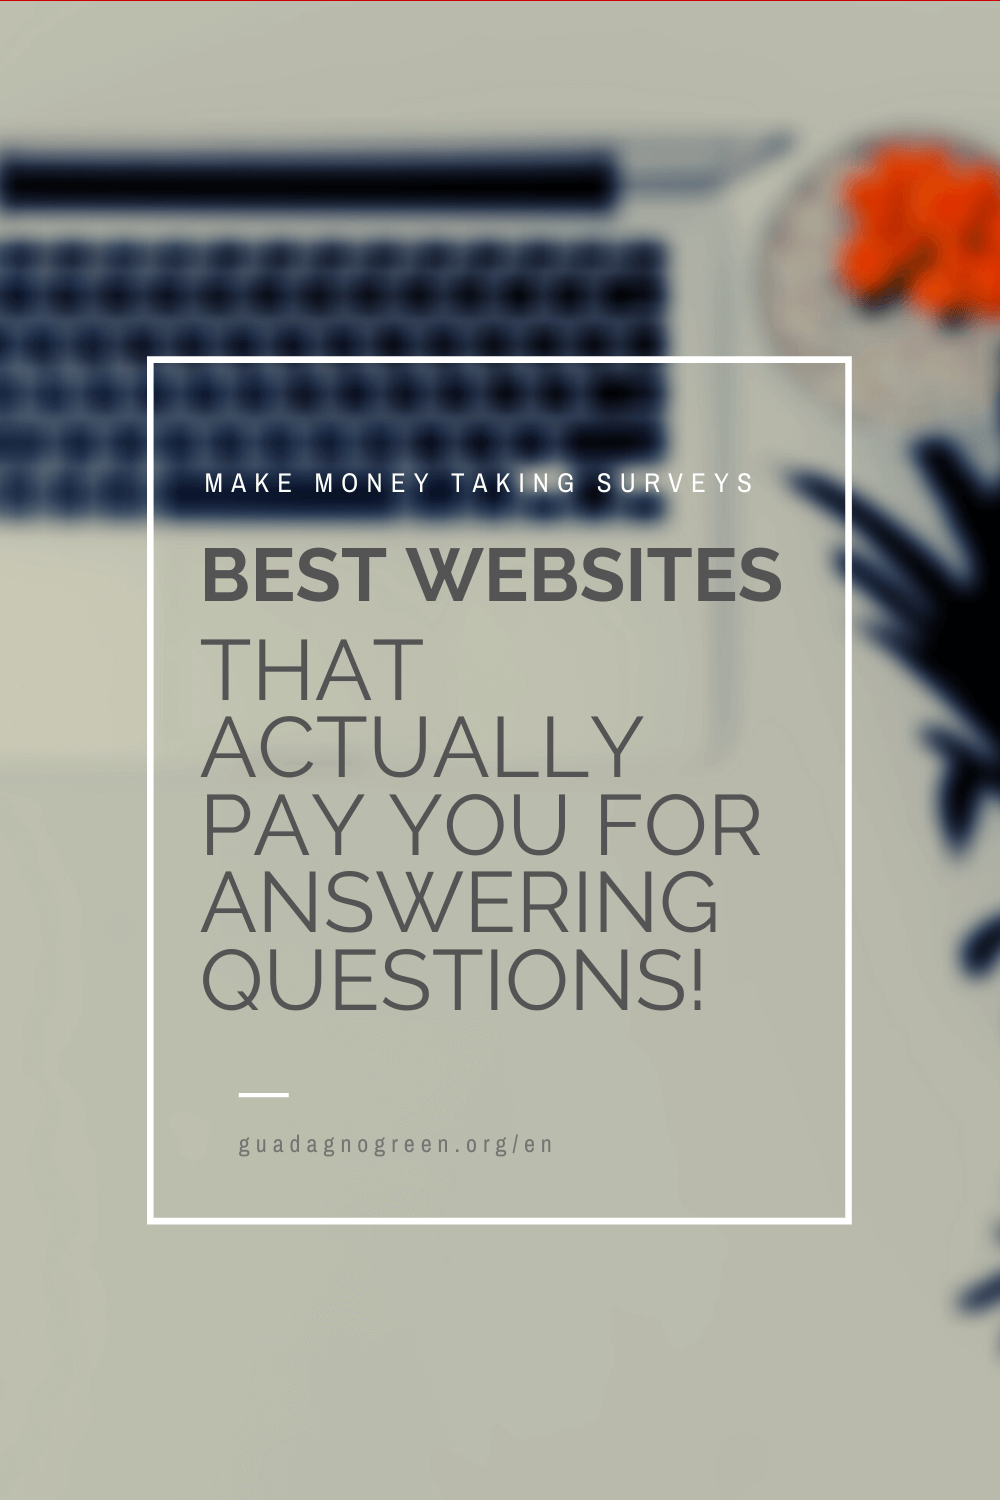 how-to-make-money-taking-surveys-best-websites-that-pay